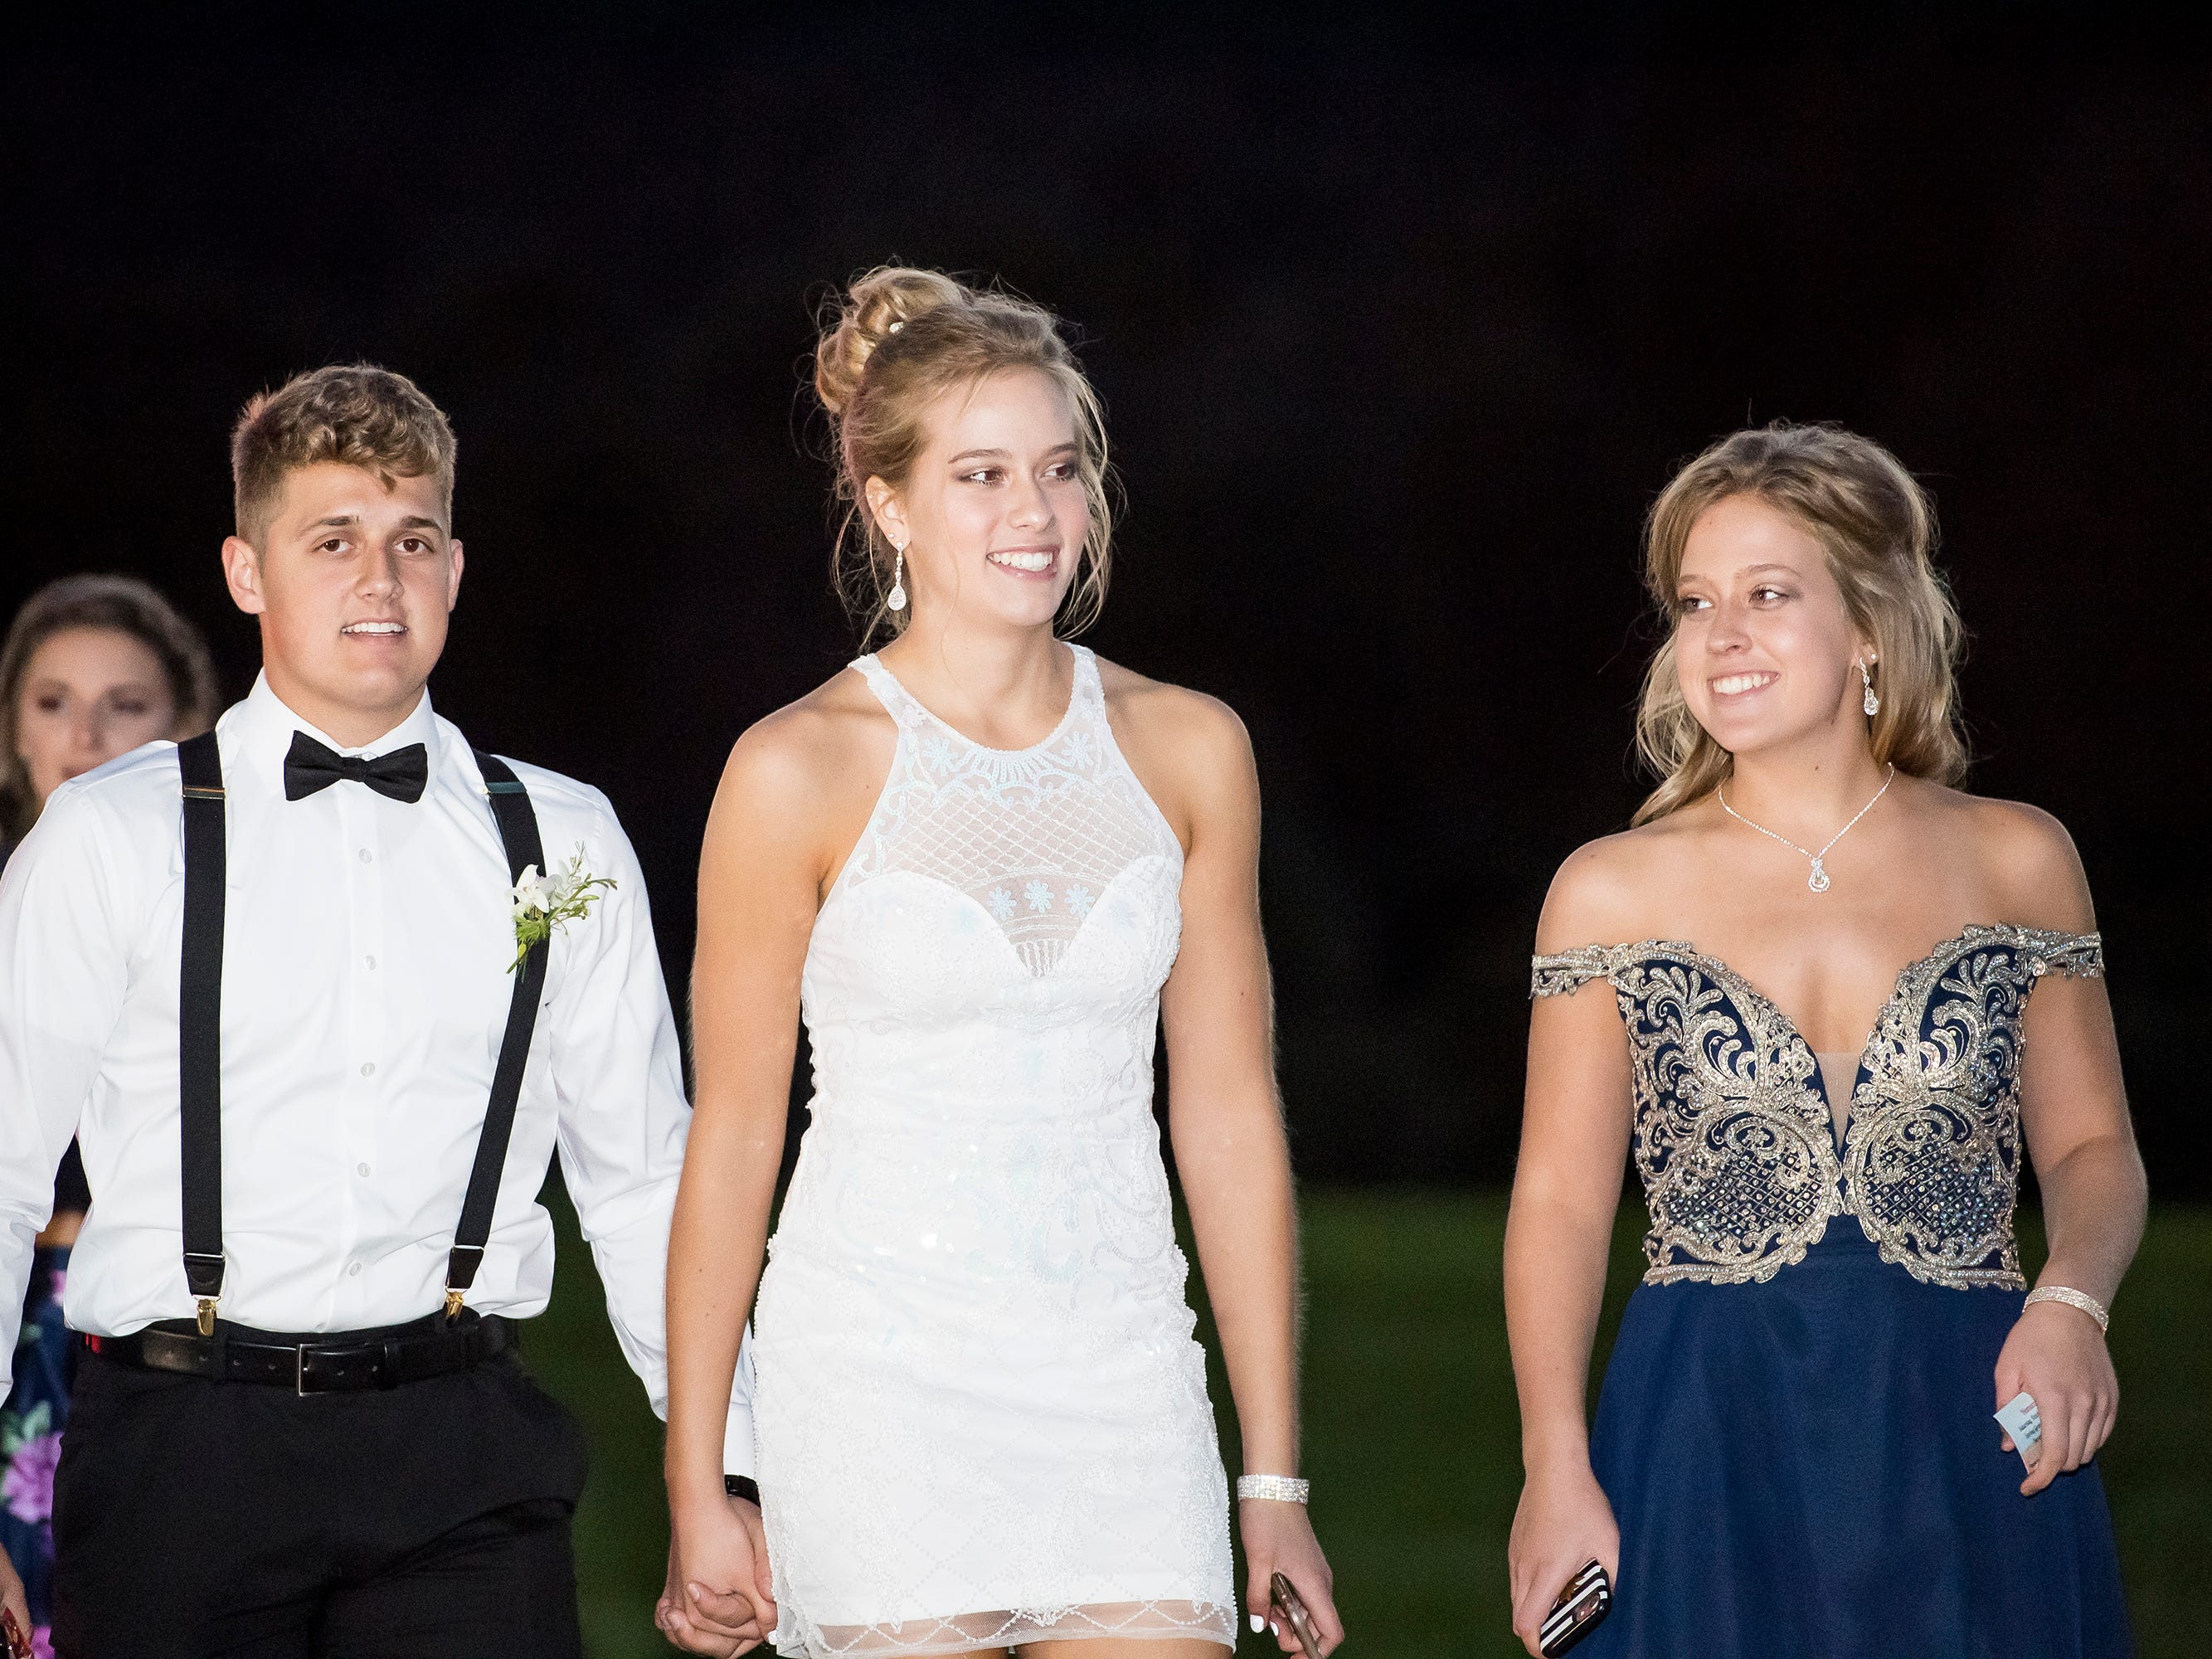 Students arrive at Spring Grove Area High School's homecoming dance on Saturday, October 13, 2018.